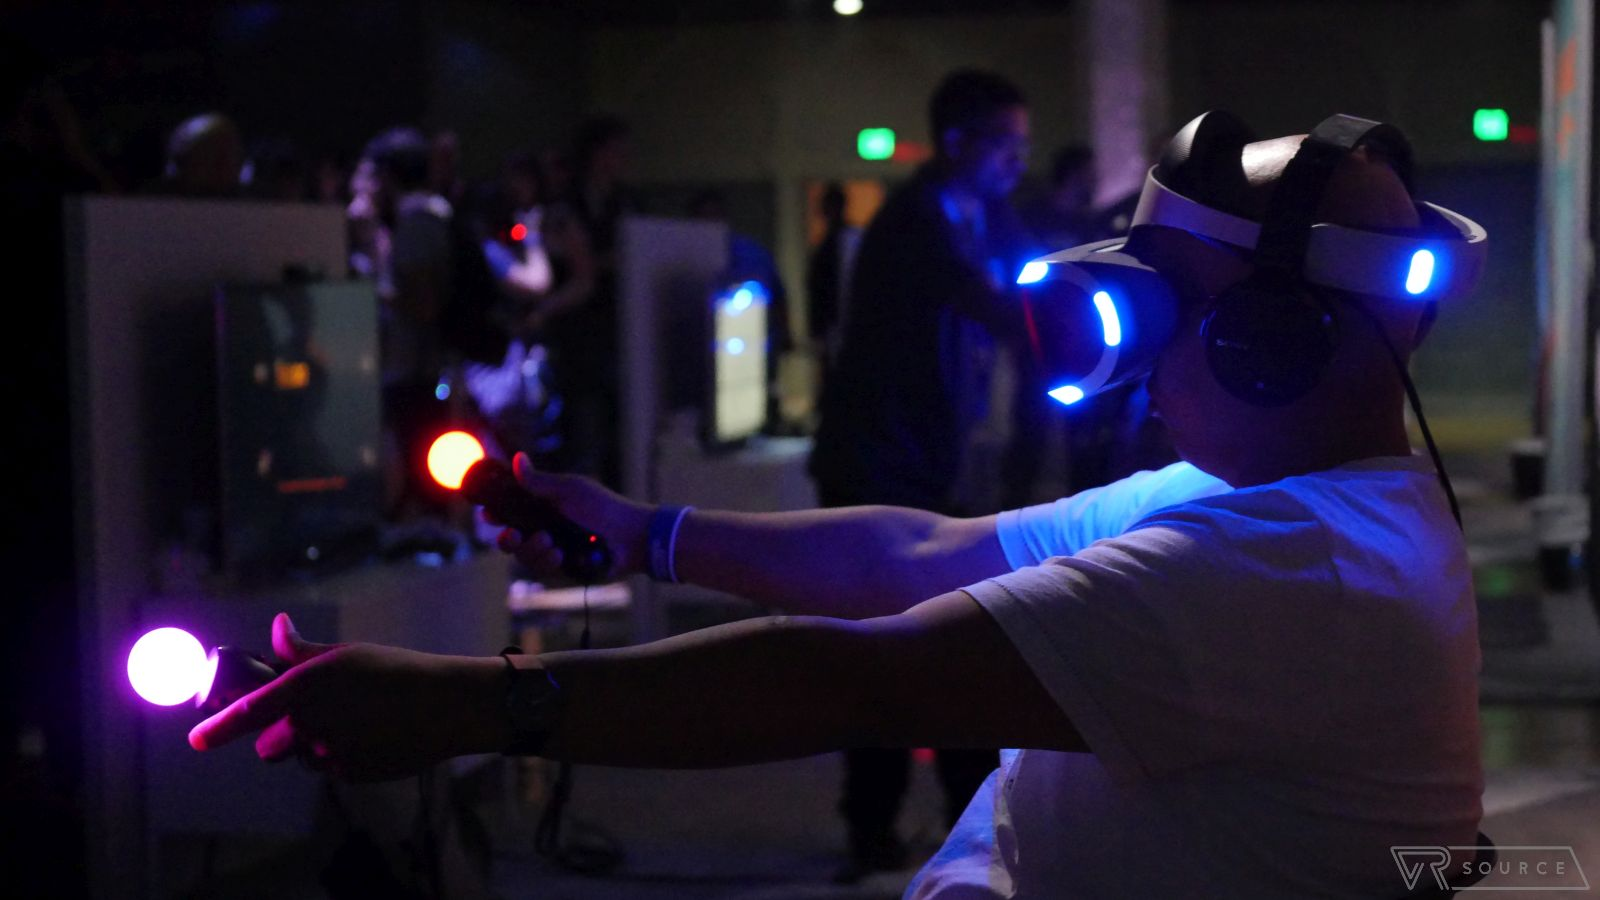 PlayStation VR hands on 33